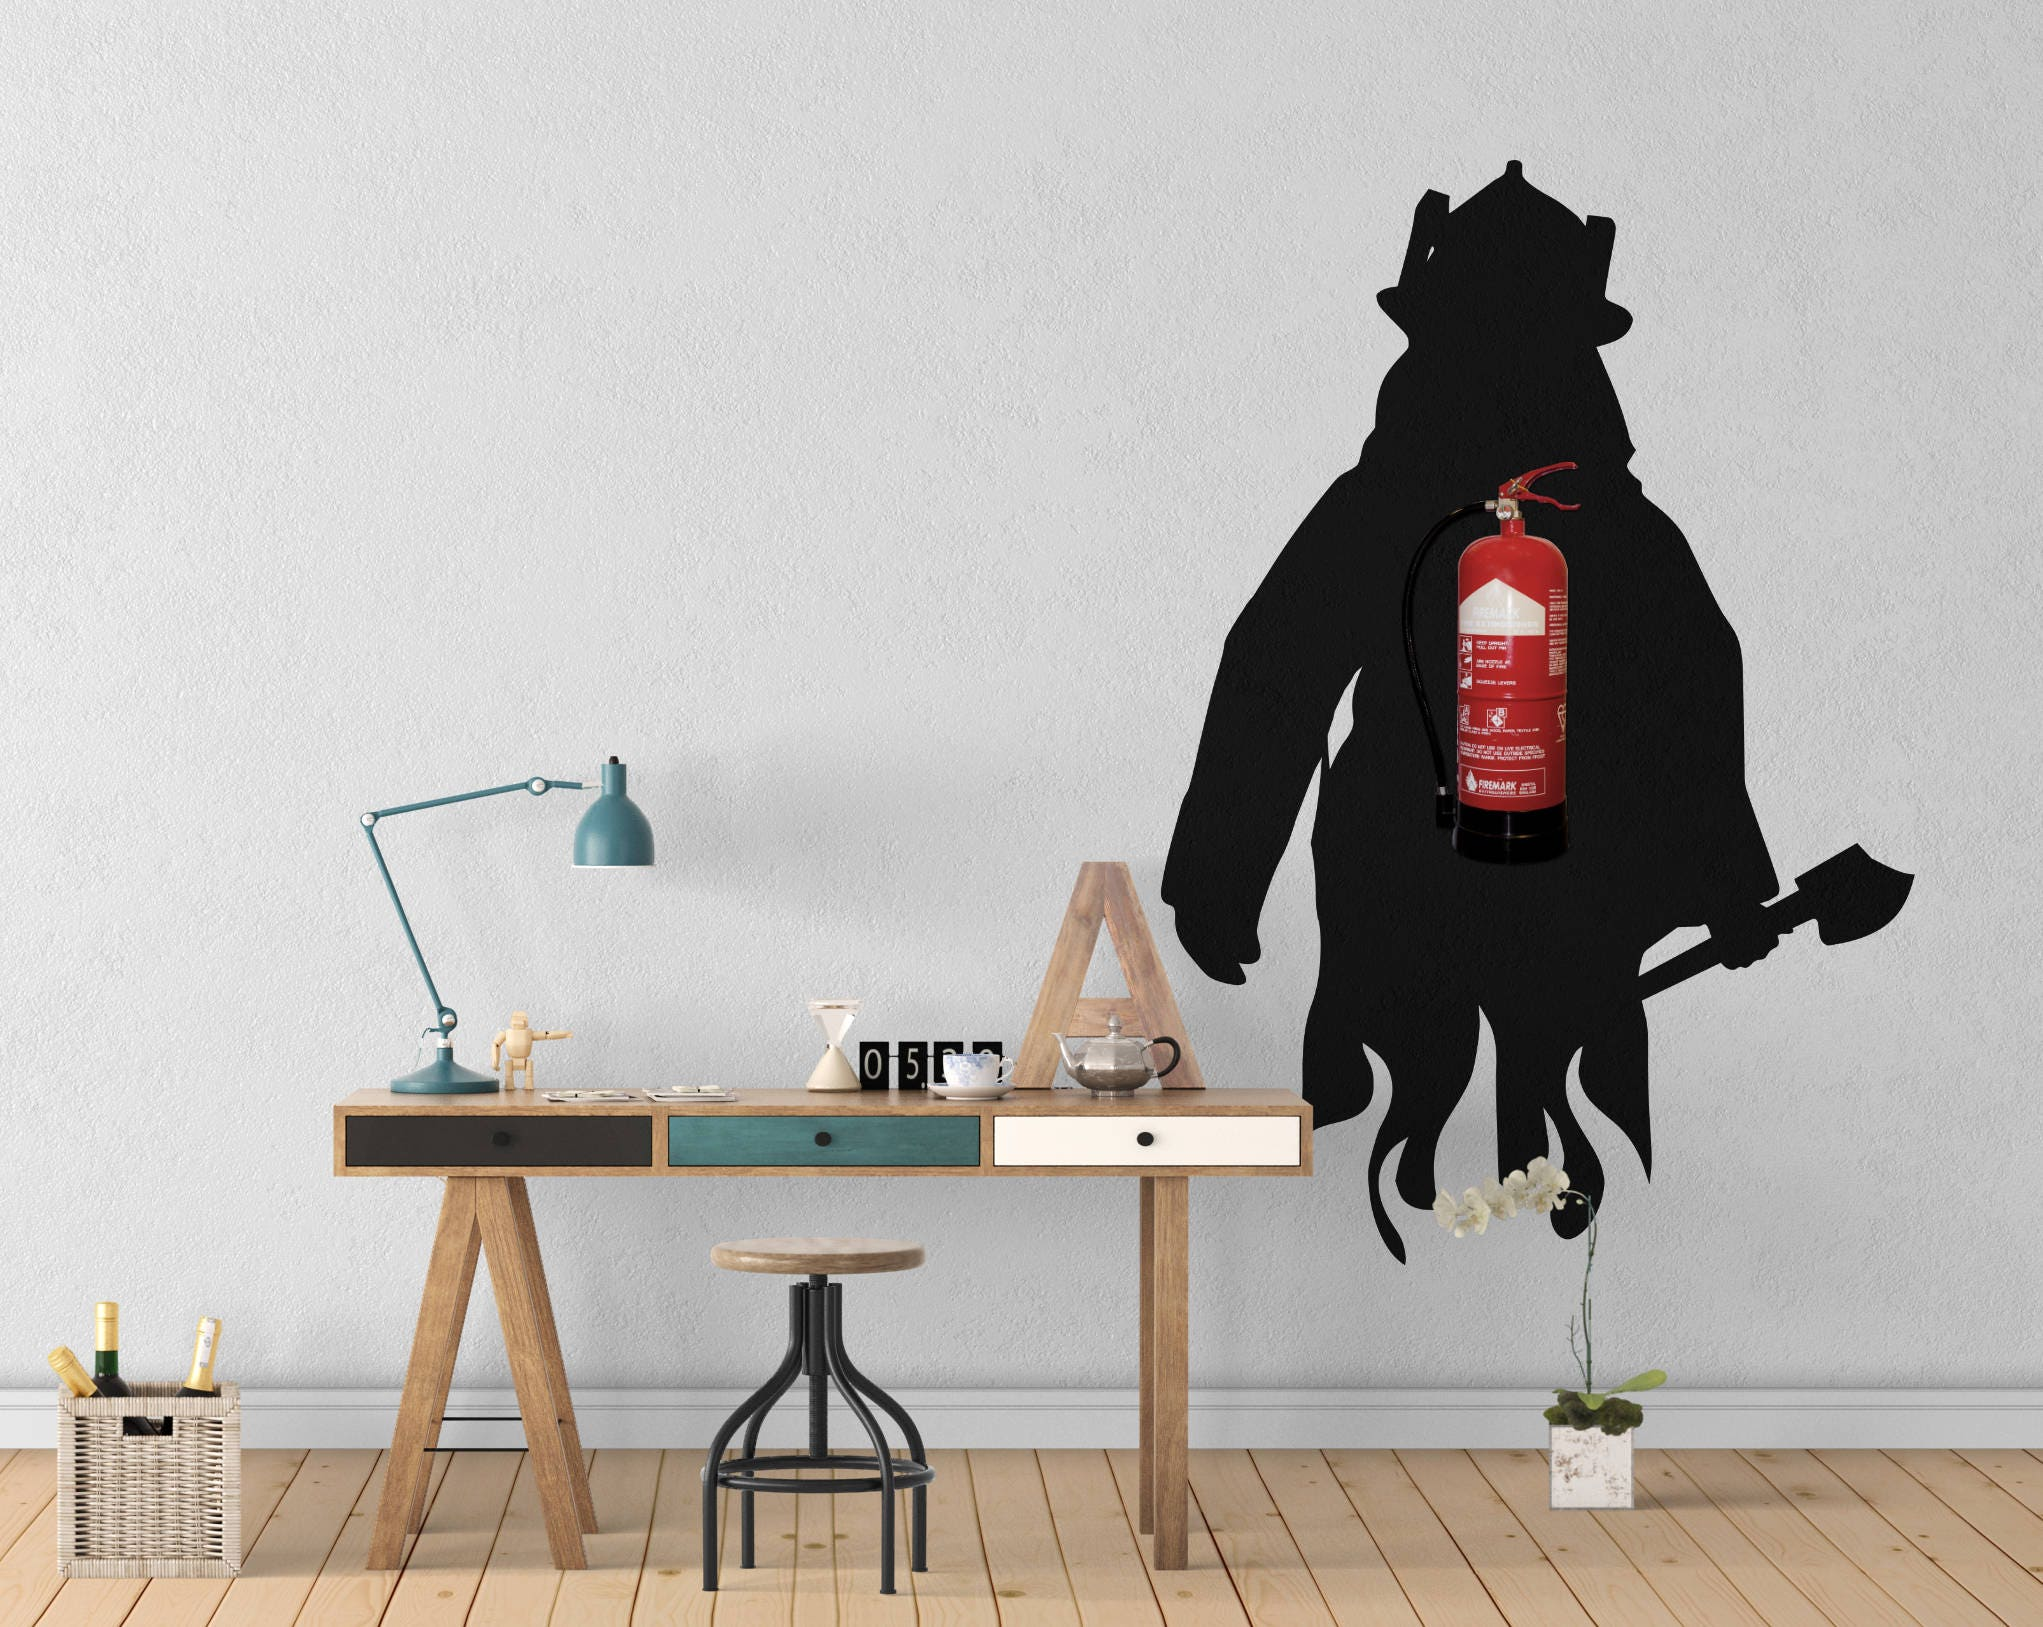 Fireman fire extinguisher wall decal wall decals for office wall fireman fire extinguisher wall decal wall decals for office wall decoration extinguisher disguise wall vinyl decal wall stickers amipublicfo Images